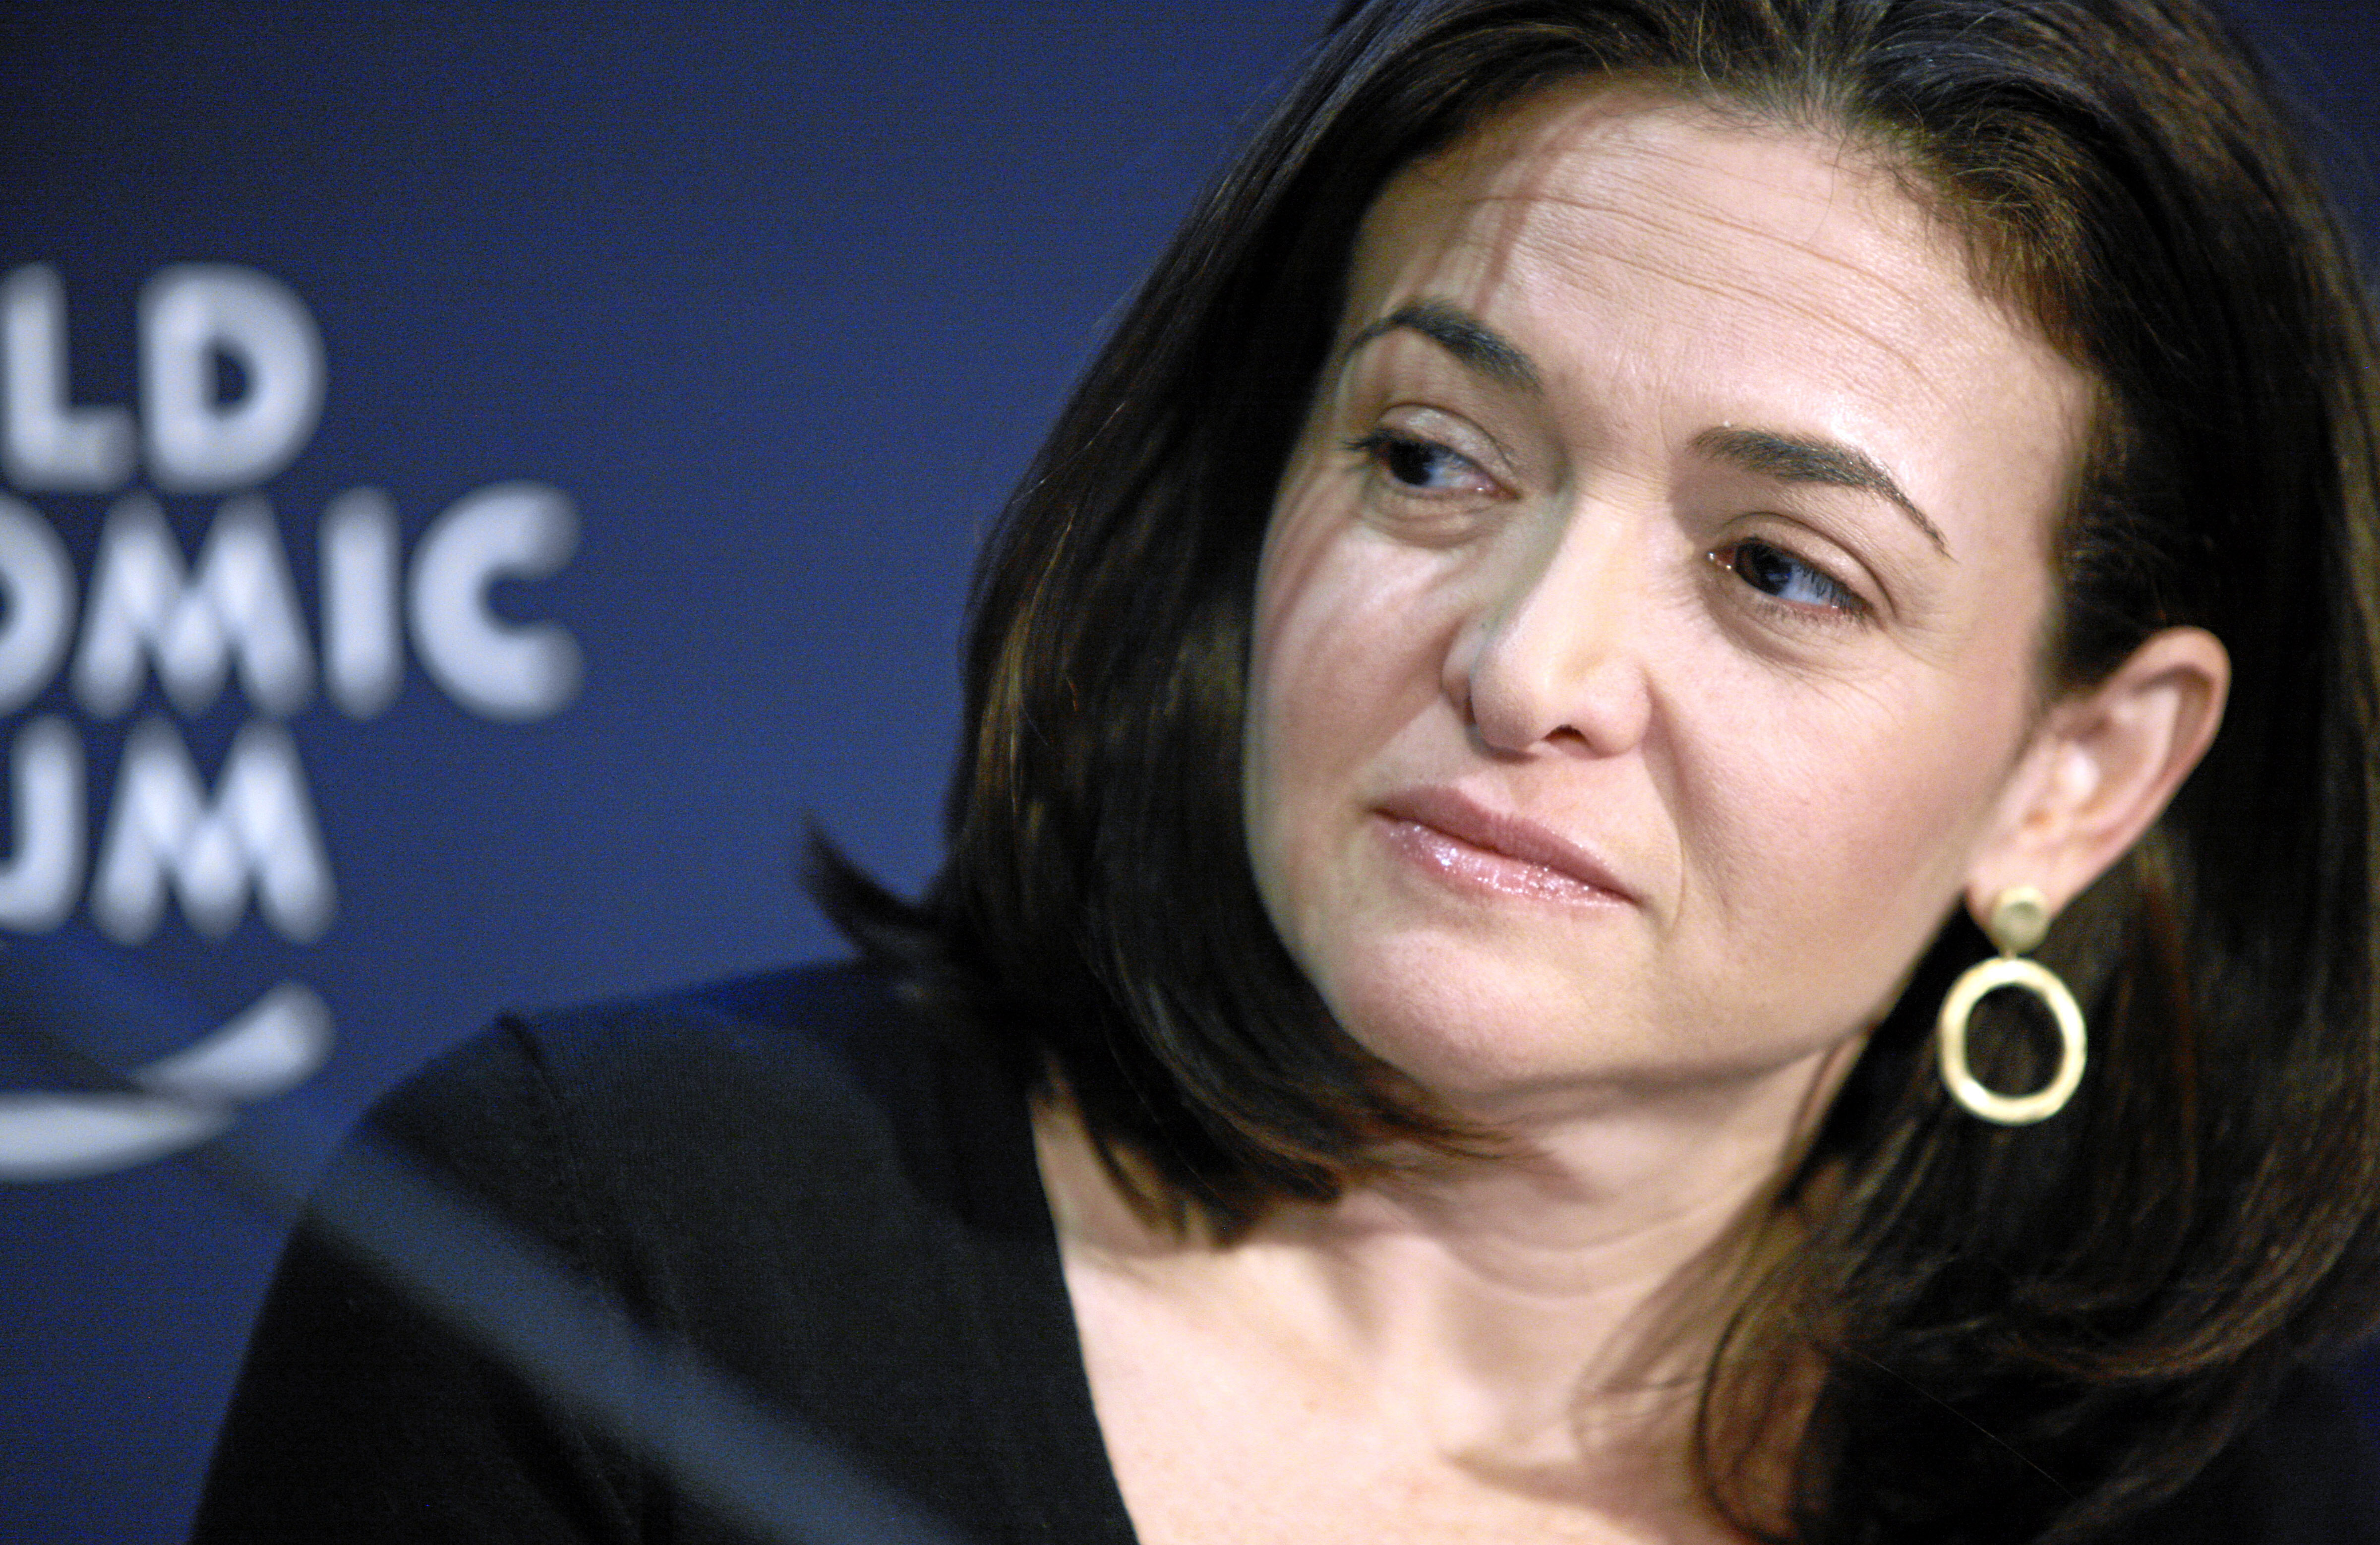 DAVOS/SWITZERLAND, 28JAN11 - Sheryl Sandberg, Chief Operating Officer, Facebook, USA; Young Global Leader are captured during the session 'Handling Hyper-connectivity' at the Annual Meeting 2011 of the World Economic Forum in Davos, Switzerland, January 28, 2011. Copyright by World Economic Forum swiss-image.ch/Photo by Jolanda Flubacher